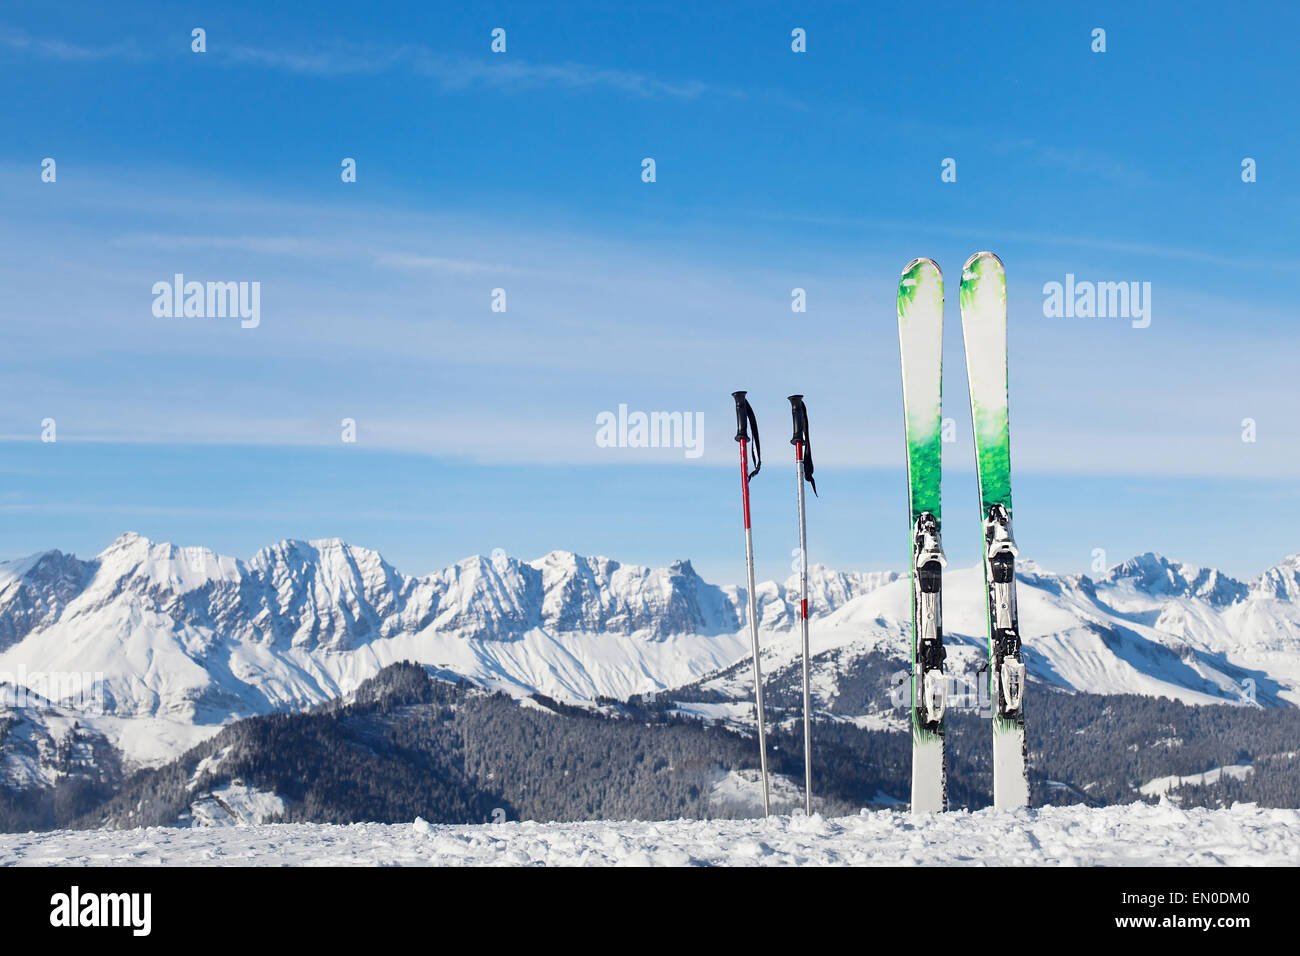 skiing in Alps, ready for winter vacations Stock Photo